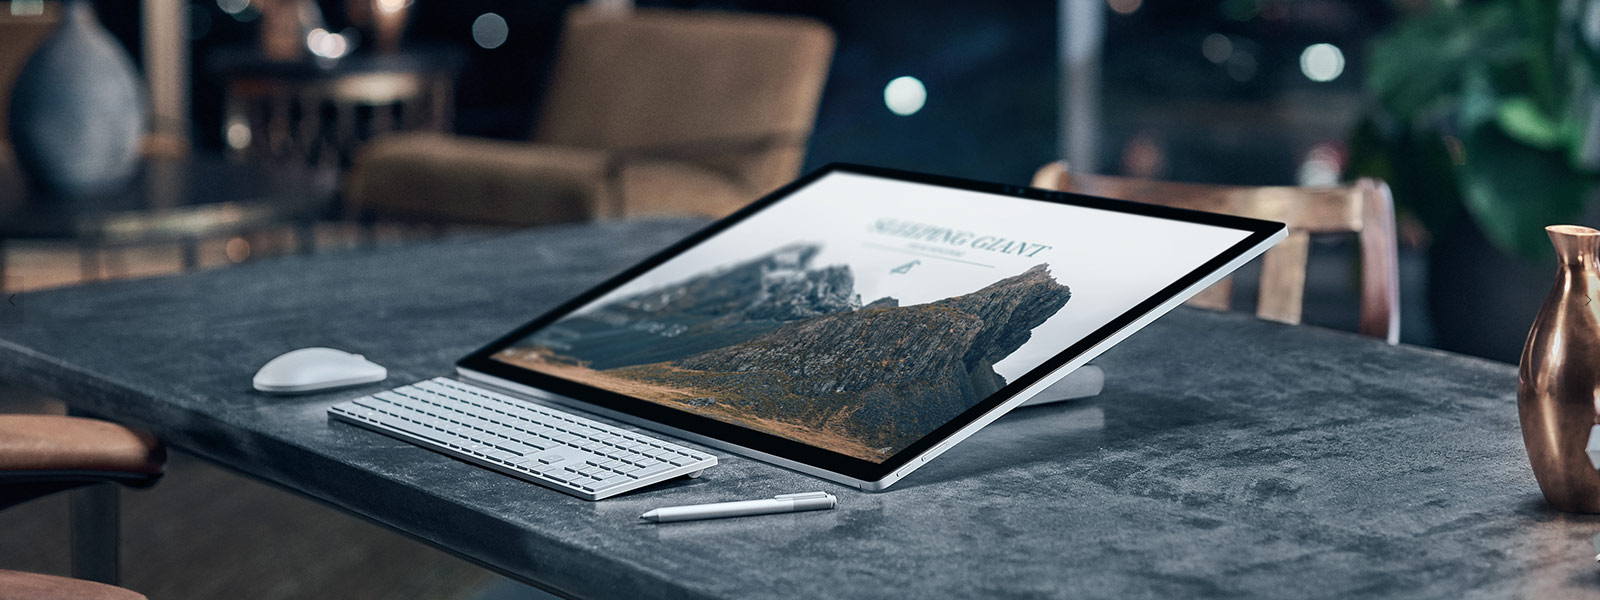 Surface Studio  in Studio Mode with Surface Pen and mouse.